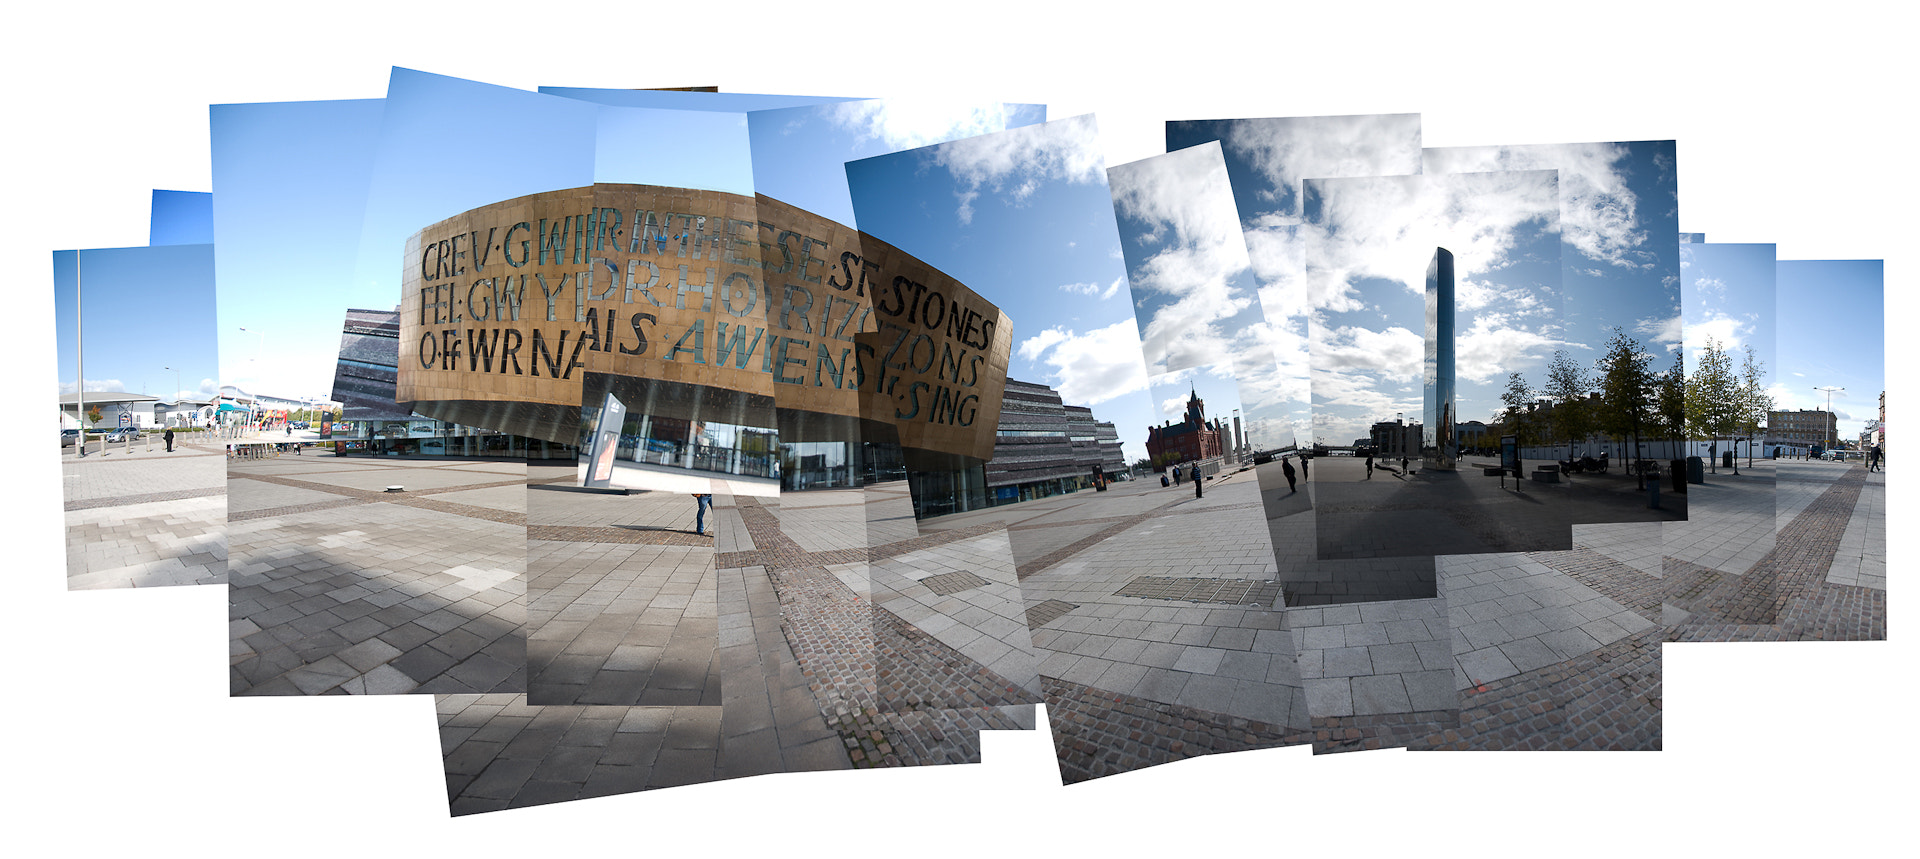 Photograph Cardiff Millenium Centre by rapscallion on 500px